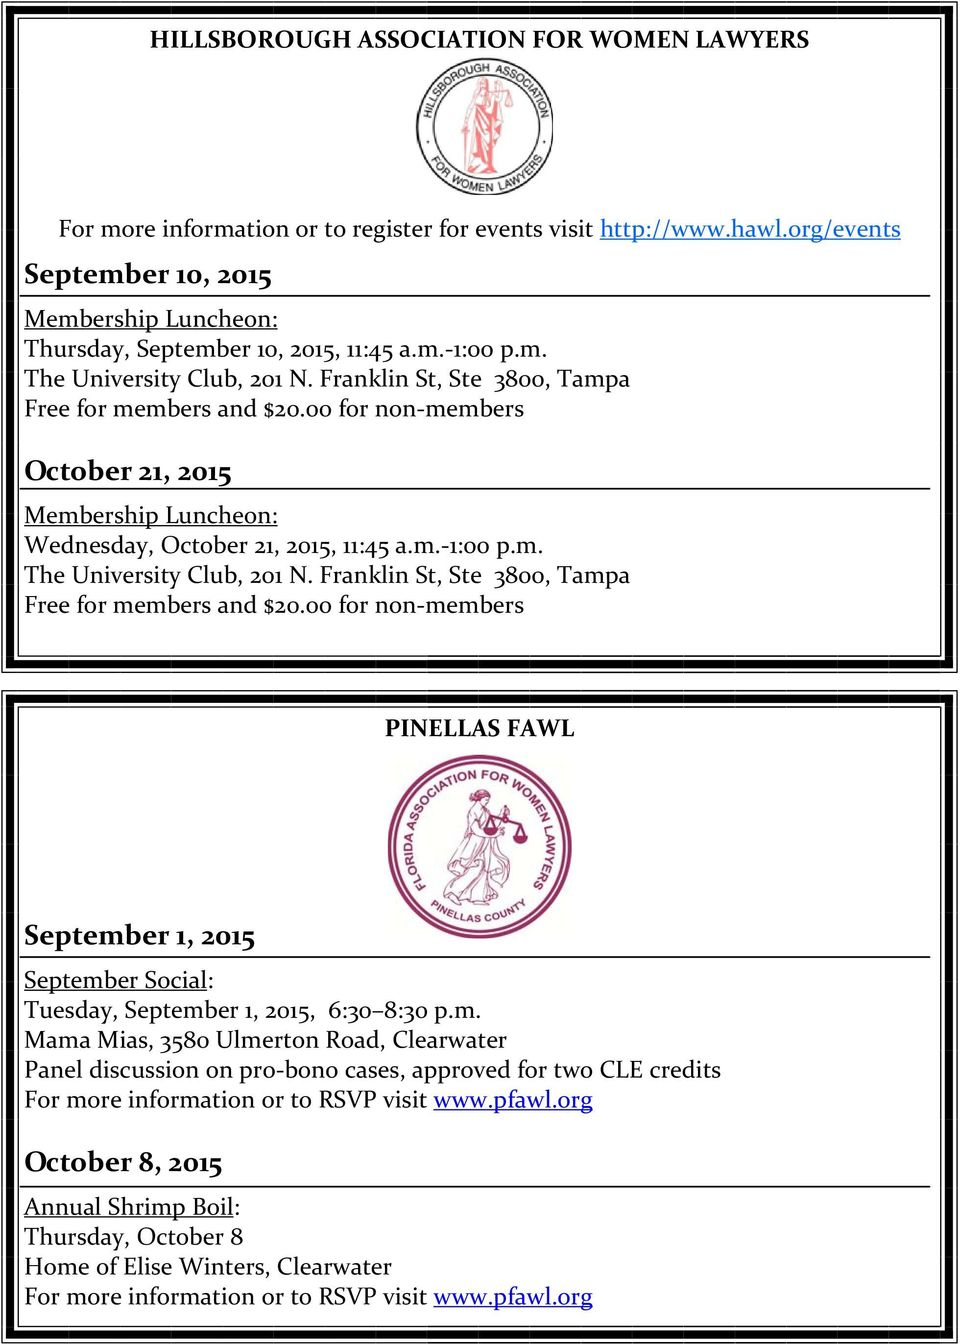 Franklin St, Ste 3800, Tampa Free for members and $20.00 for non members PINELLAS FAWL September 1, 2015 September Social: Tuesday, September 1, 2015, 6:30 8:30 p.m. Mama Mias, 3580 Ulmerton Road, Clearwater Panel discussion on pro bono cases, approved for two CLE credits For more information or to RSVP visit www.